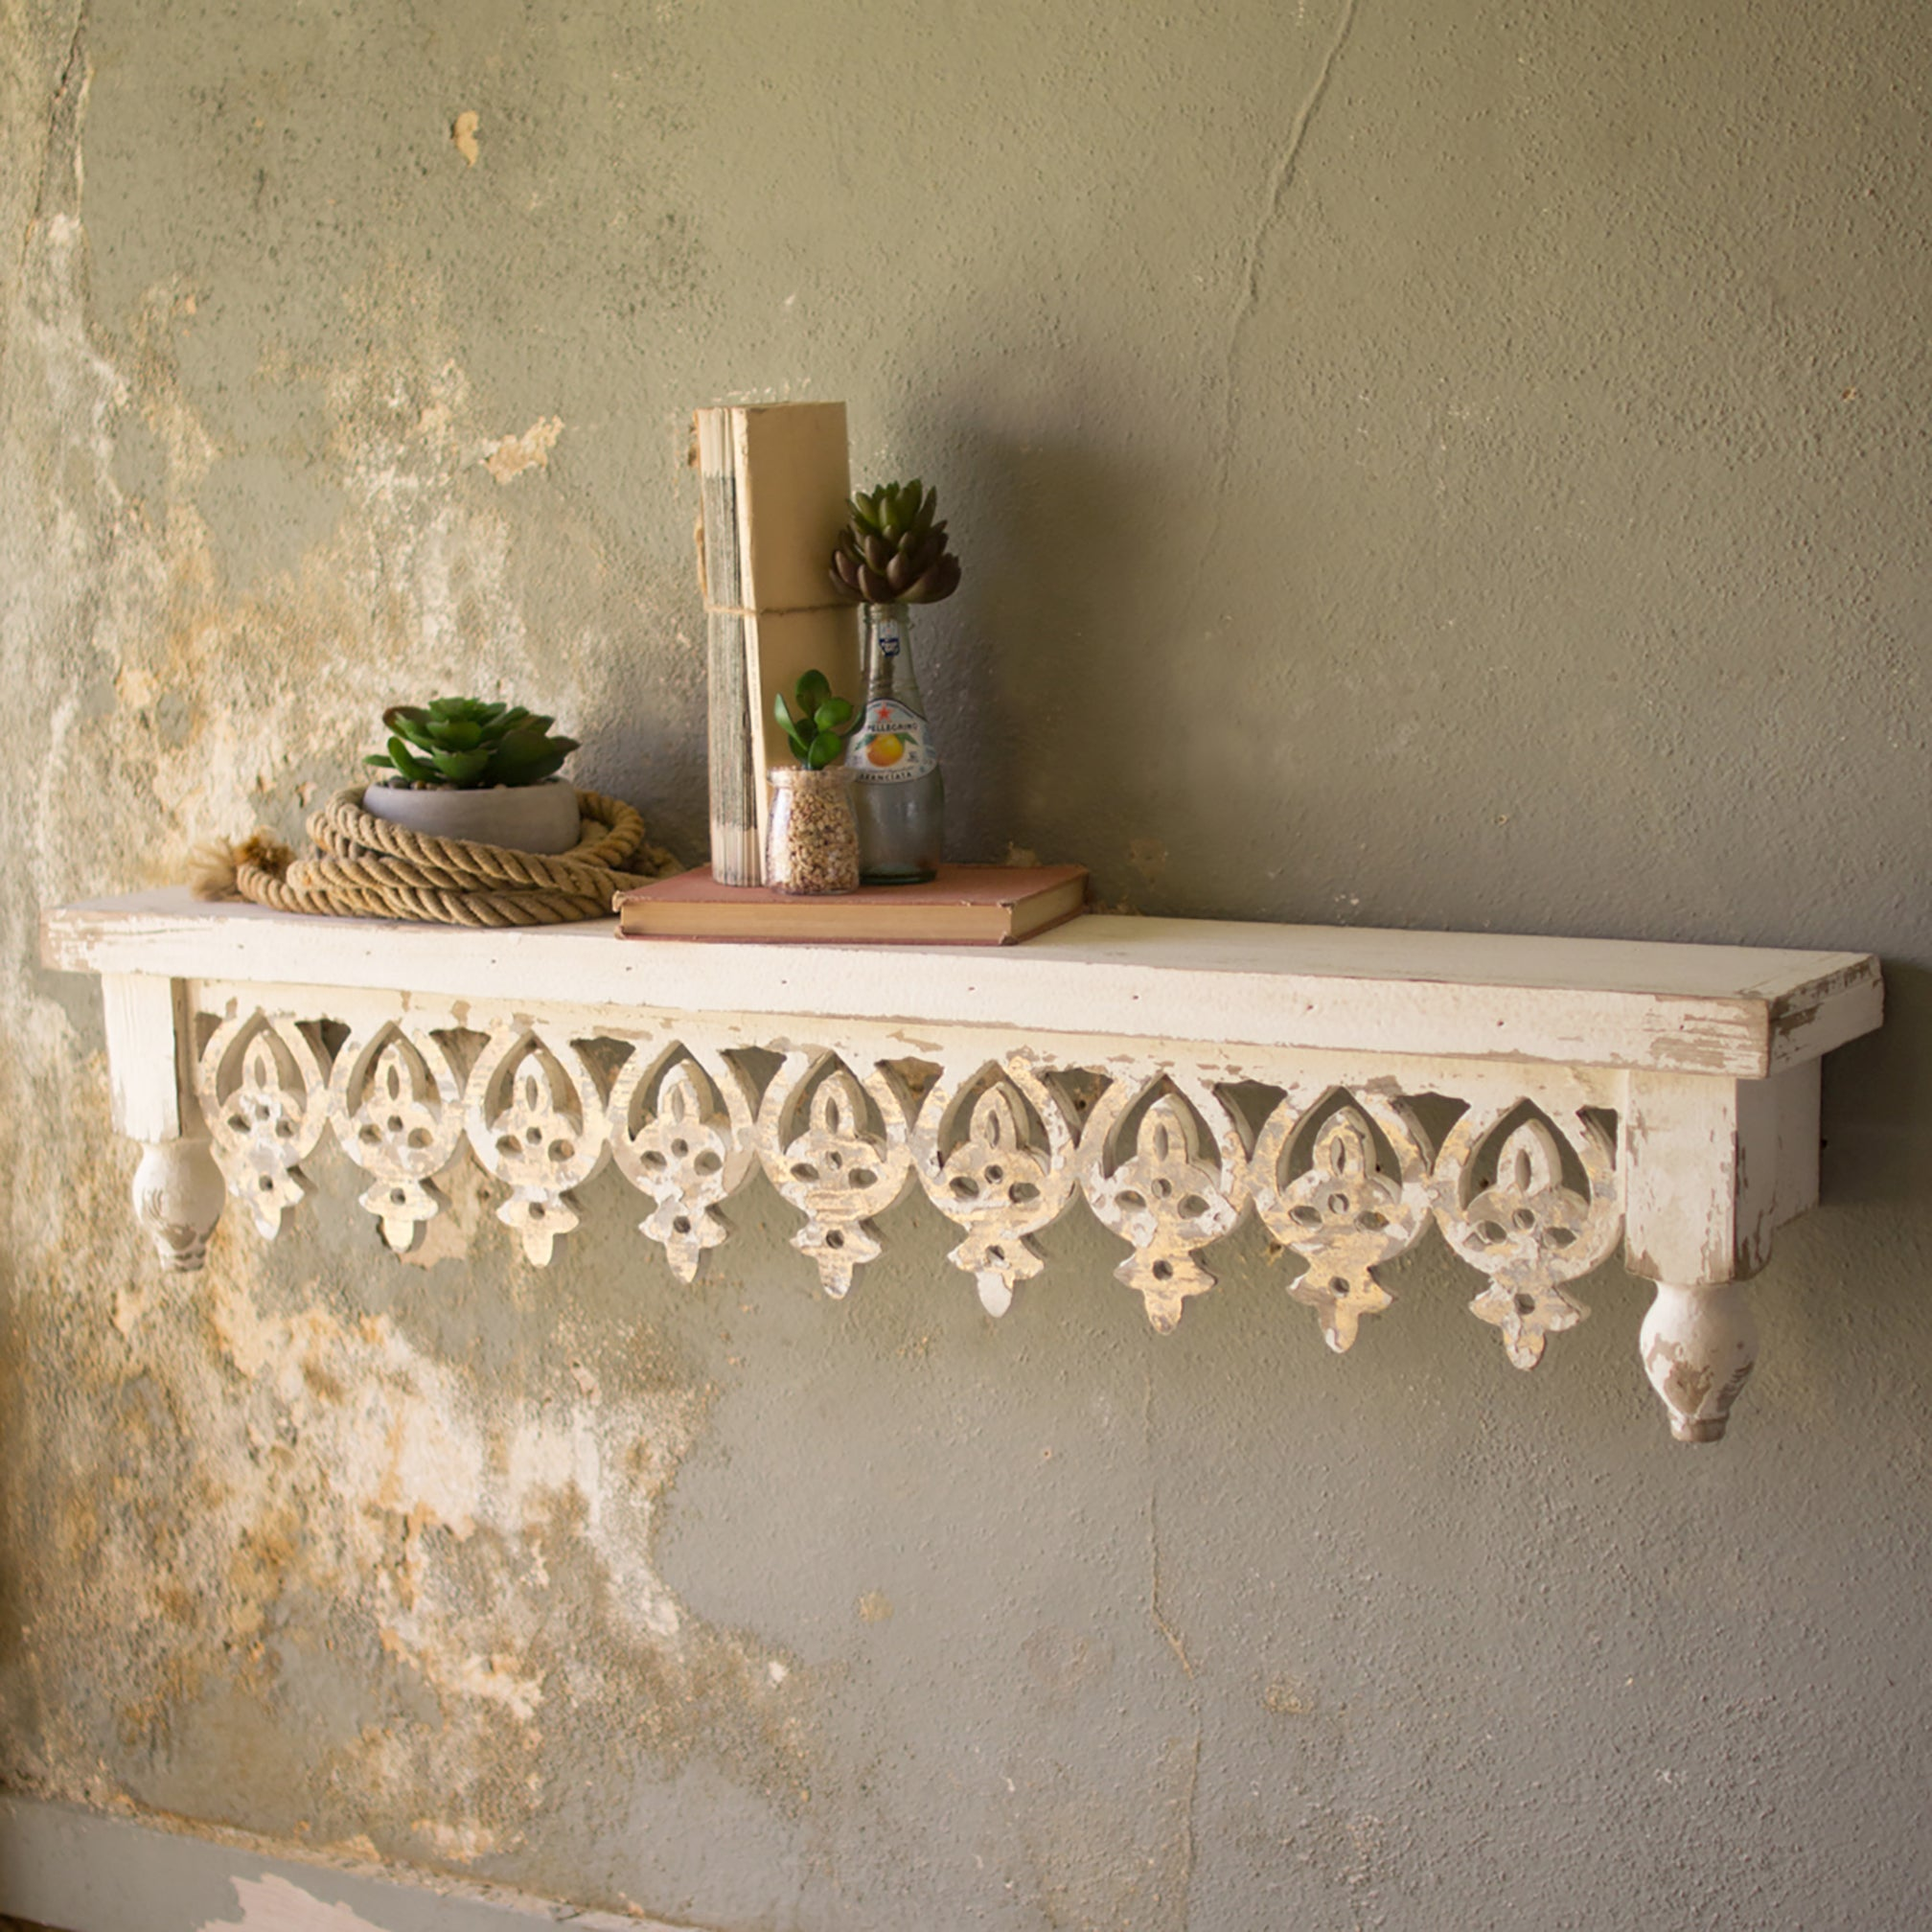 Rustic Hand Carved Floating Wood Wall Shelf